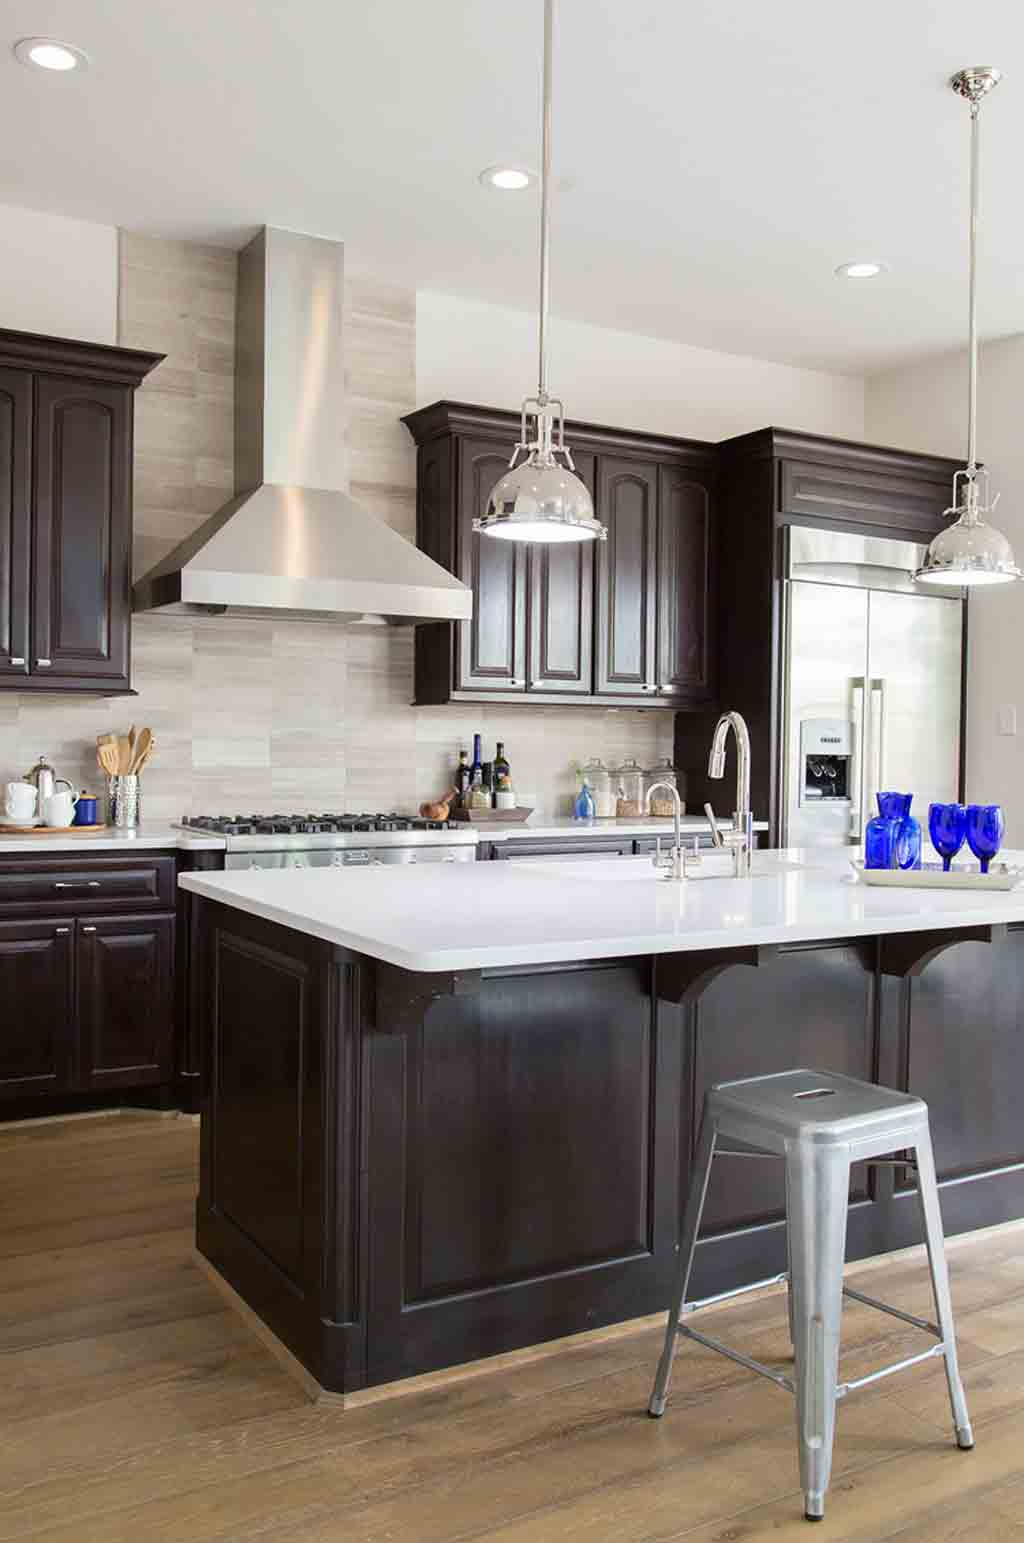 Espresso Kitchen Cabinets With Greige Wall Color By Carla